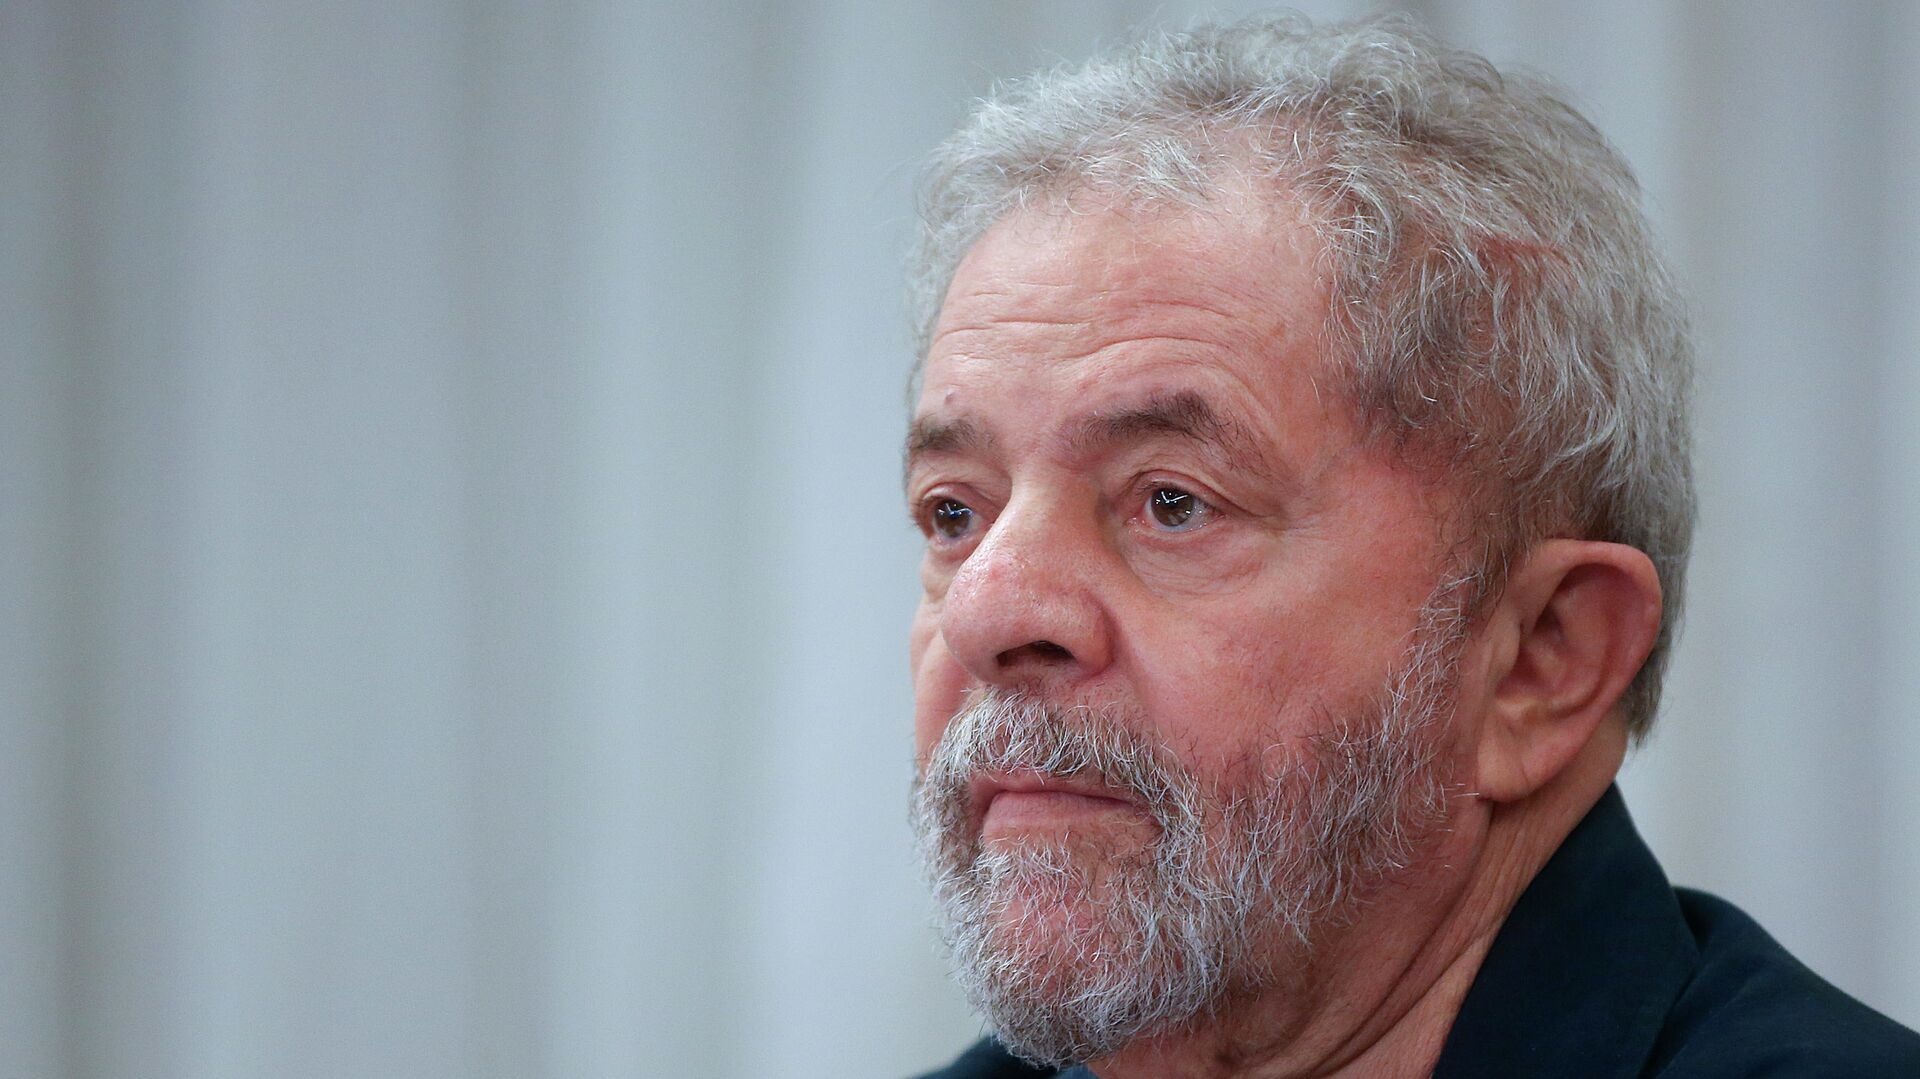 Brazil's former President Luiz Inacio Lula da Silva attends an extraordinary Worker's Party leaders meeting in Sao Paulo, Brazil, Monday, March 30, 2015 - Sputnik Mundo, 1920, 23.03.2021